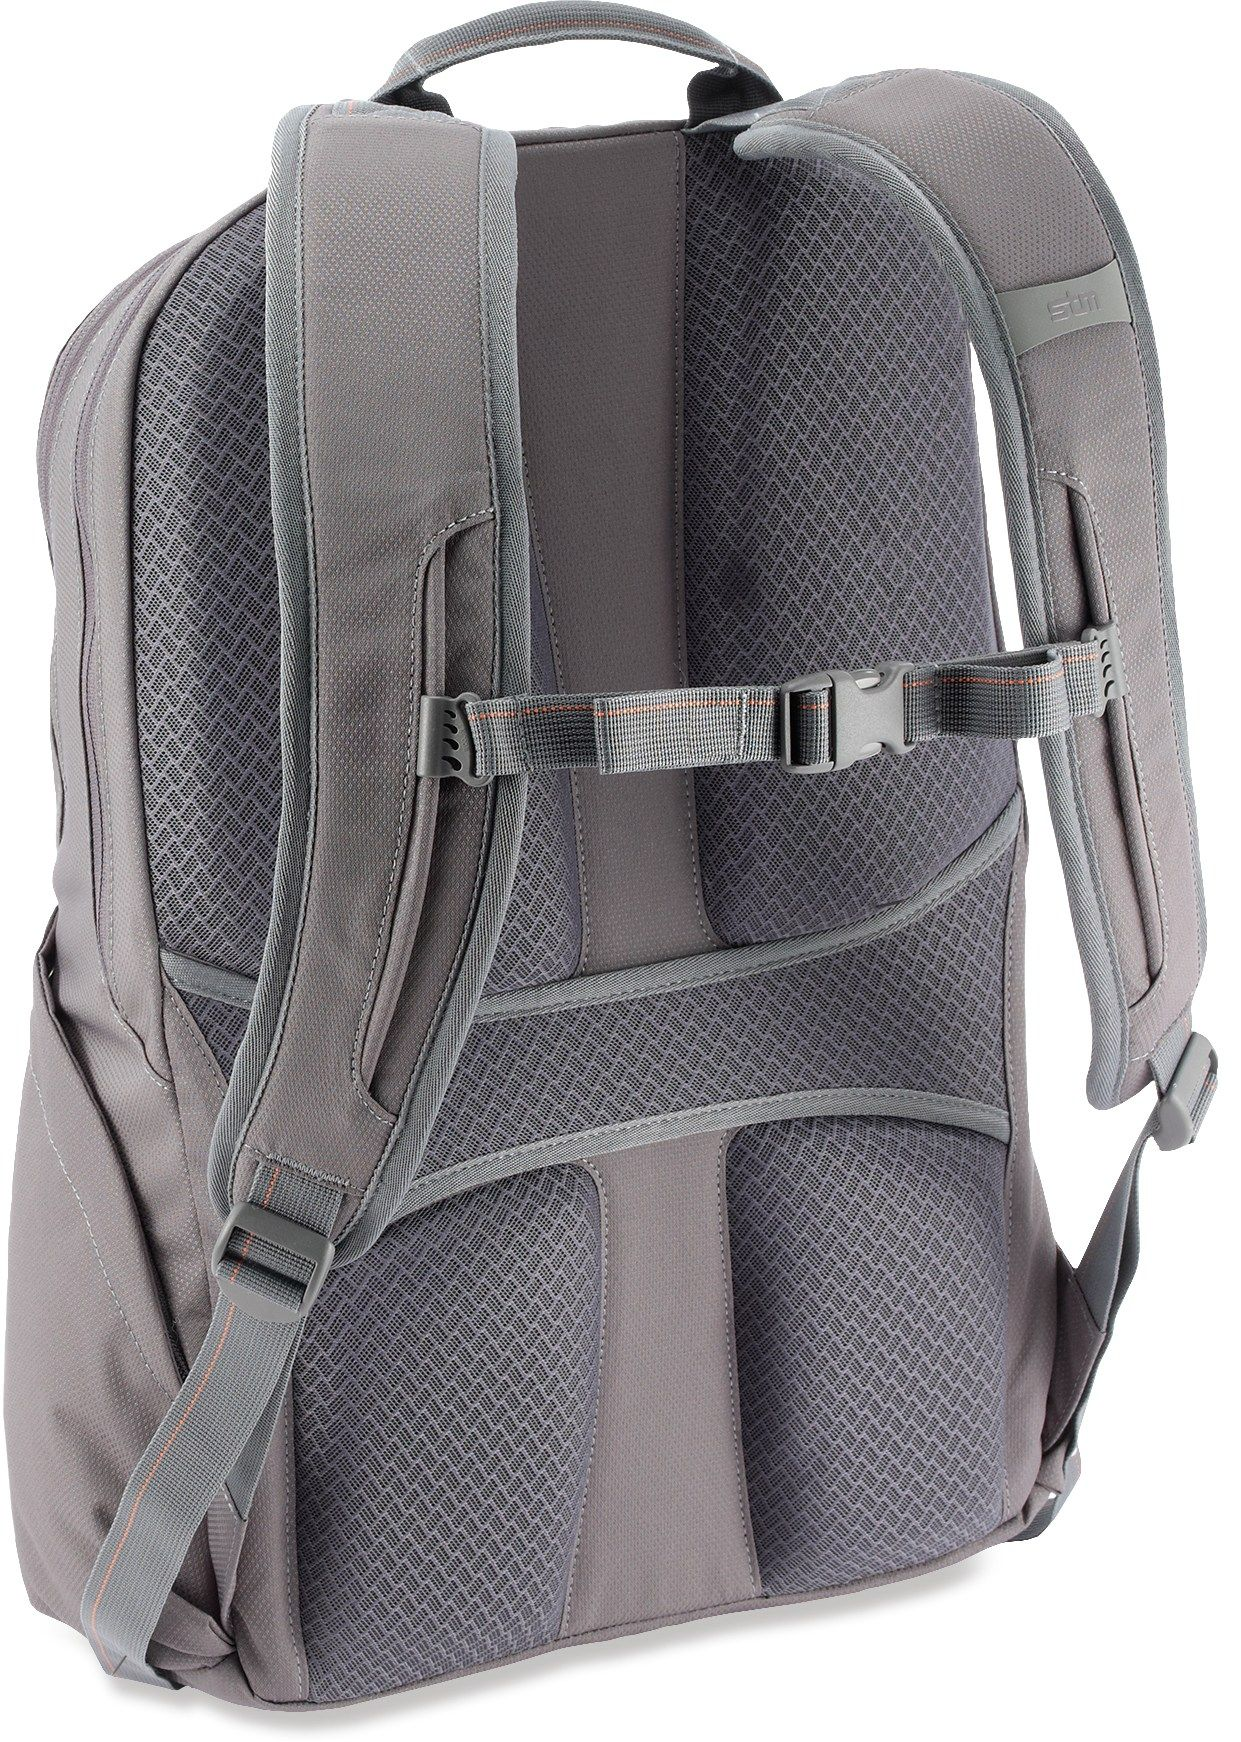 100 stm impulse laptop daypack free shipping at rei com